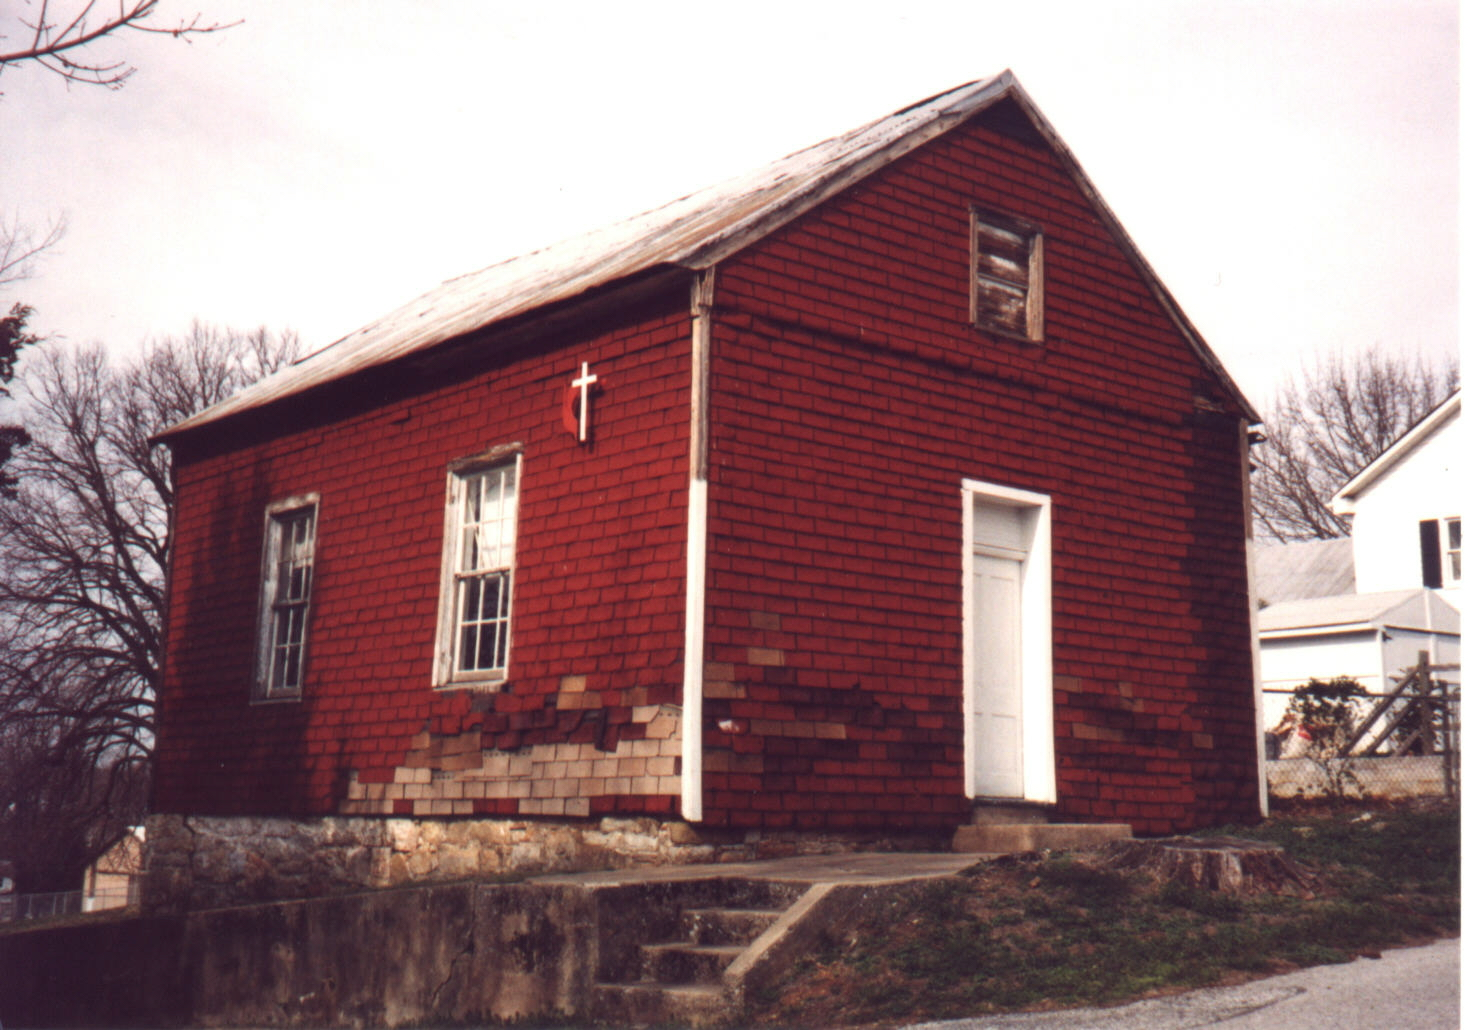 Viewer is facing the chapel, which is painted red.